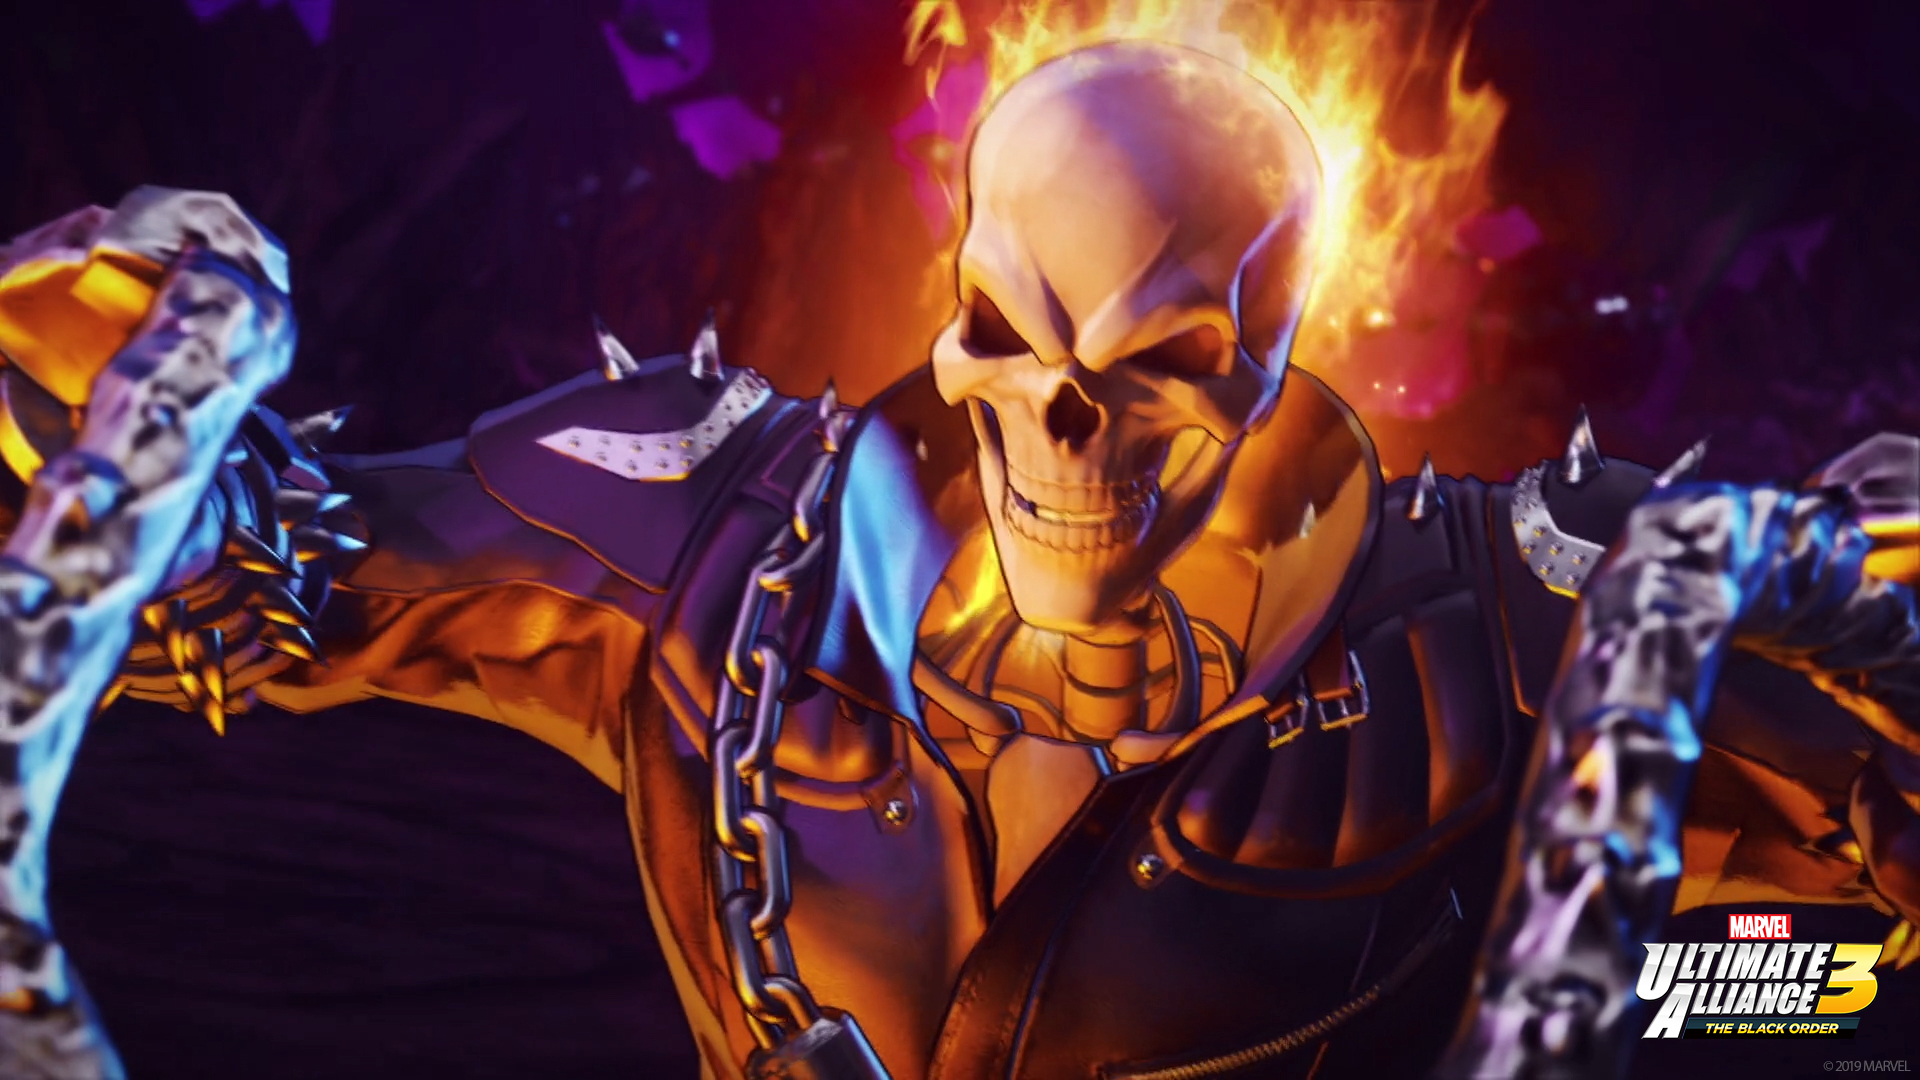 Marvel Ultimate Alliance 3 is out today and a datamine has already revealed 4 new characters